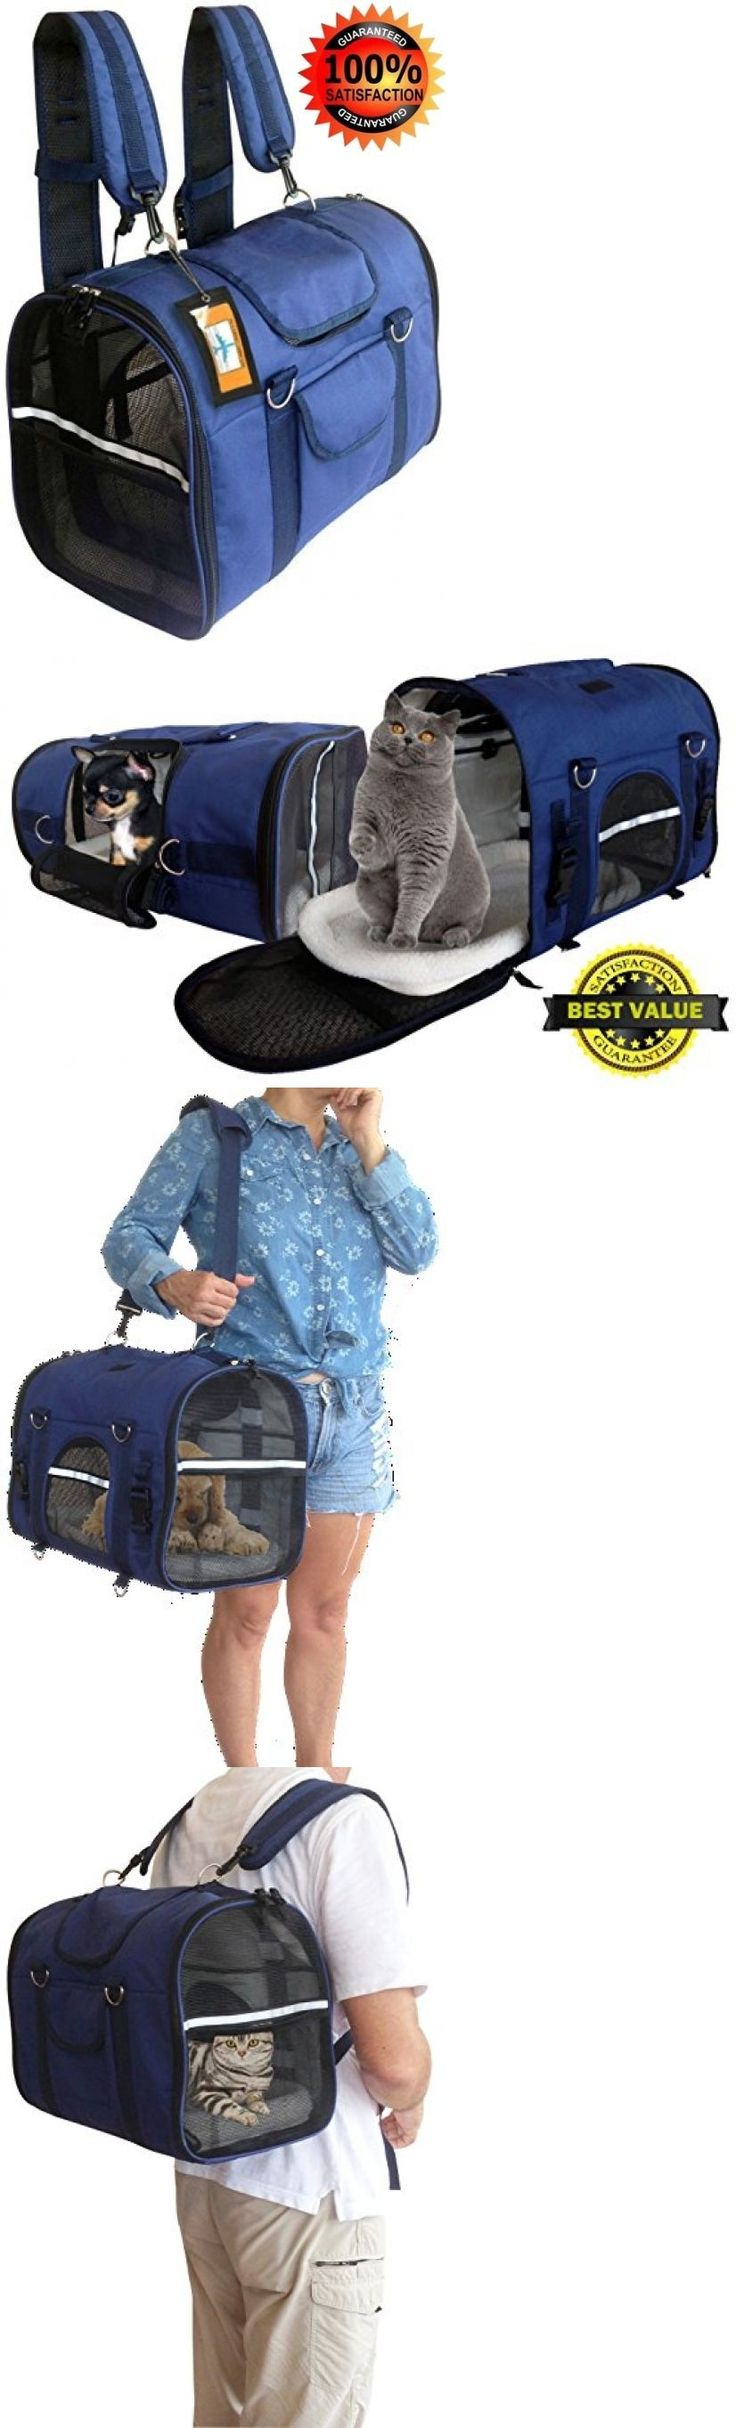 Carriers and Totes 177788: Southwest Airlines Pet Carrier Airline Approved Backpack Car Seat Cat Dog BUY IT NOW ONLY: $96.69